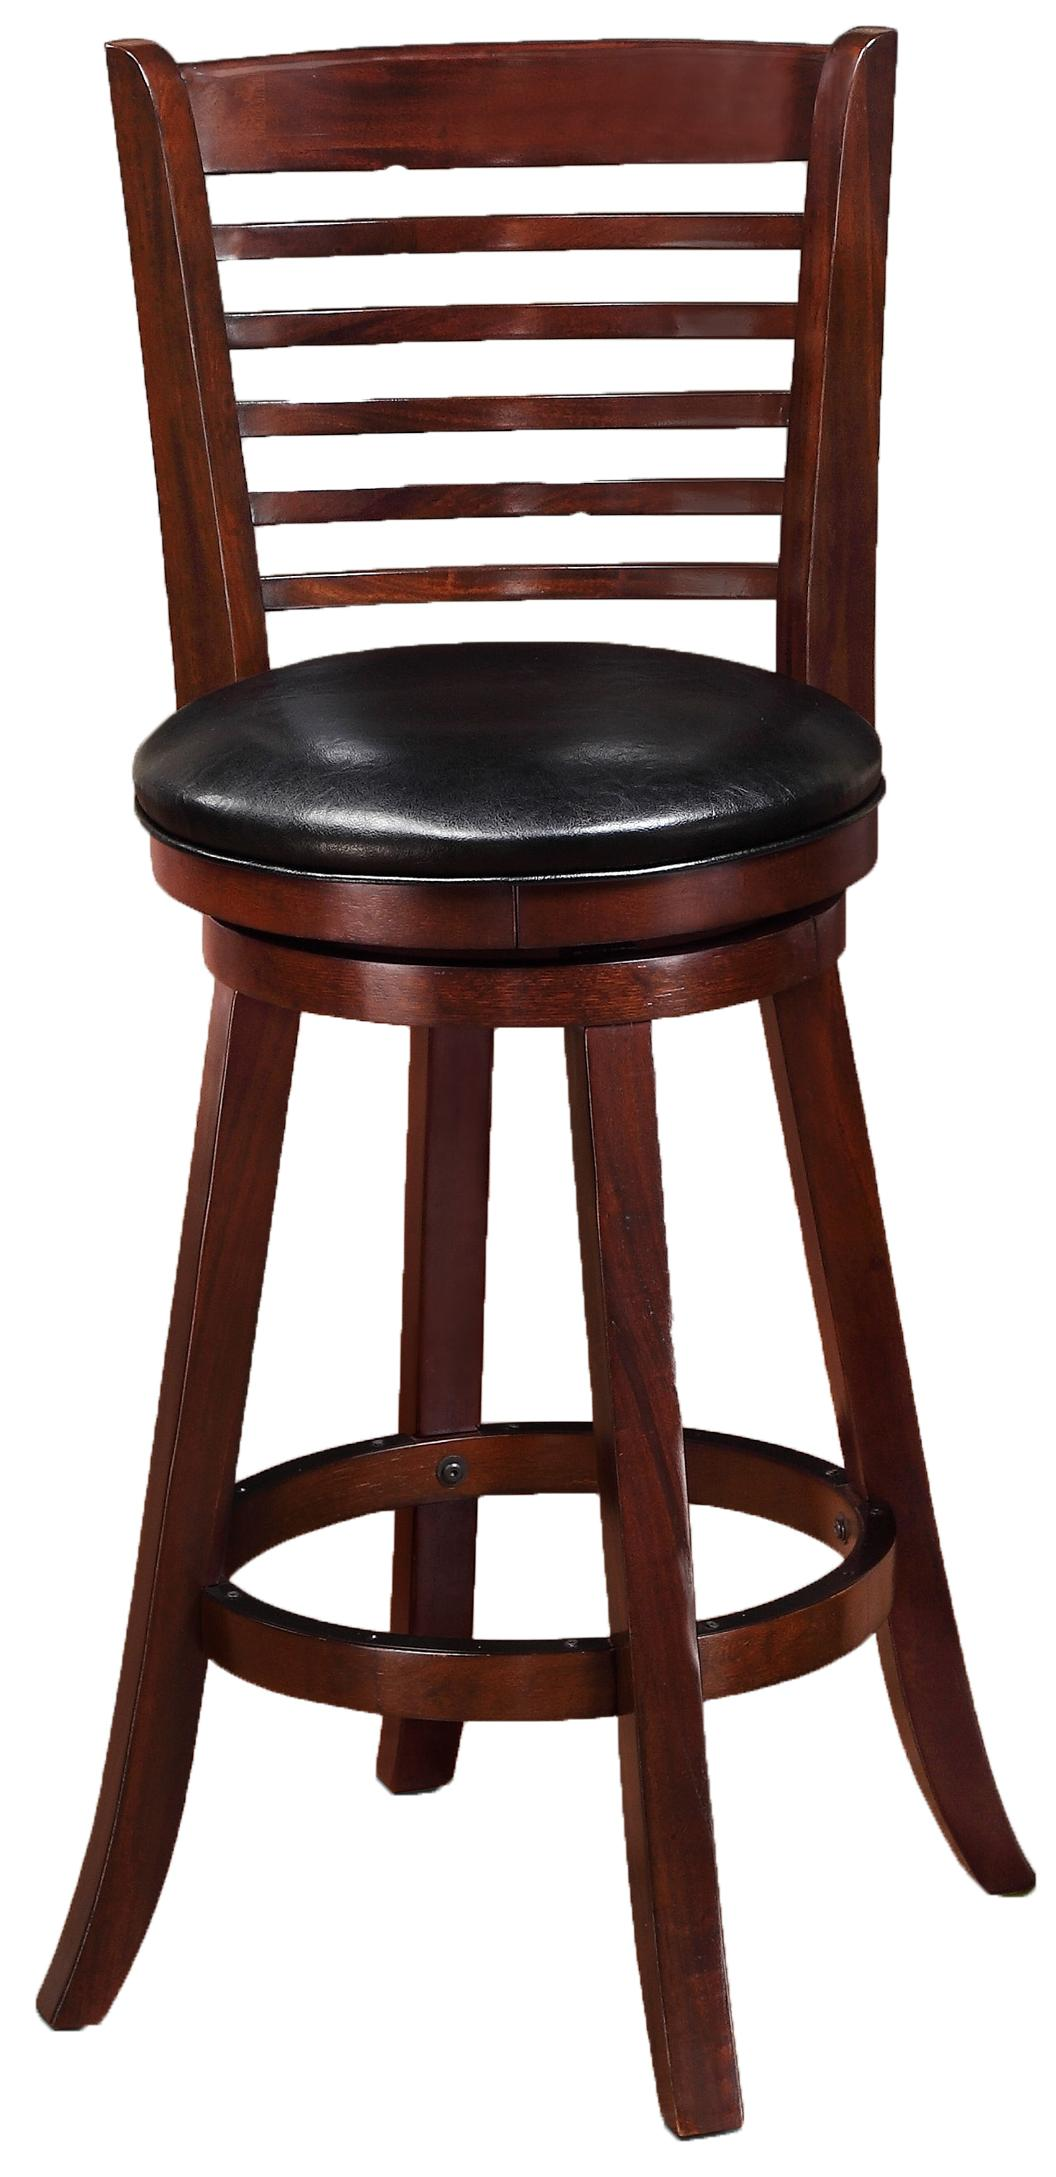 Crown Mark Bar Stools High Swivel Chair - Item Number: 2996C-29